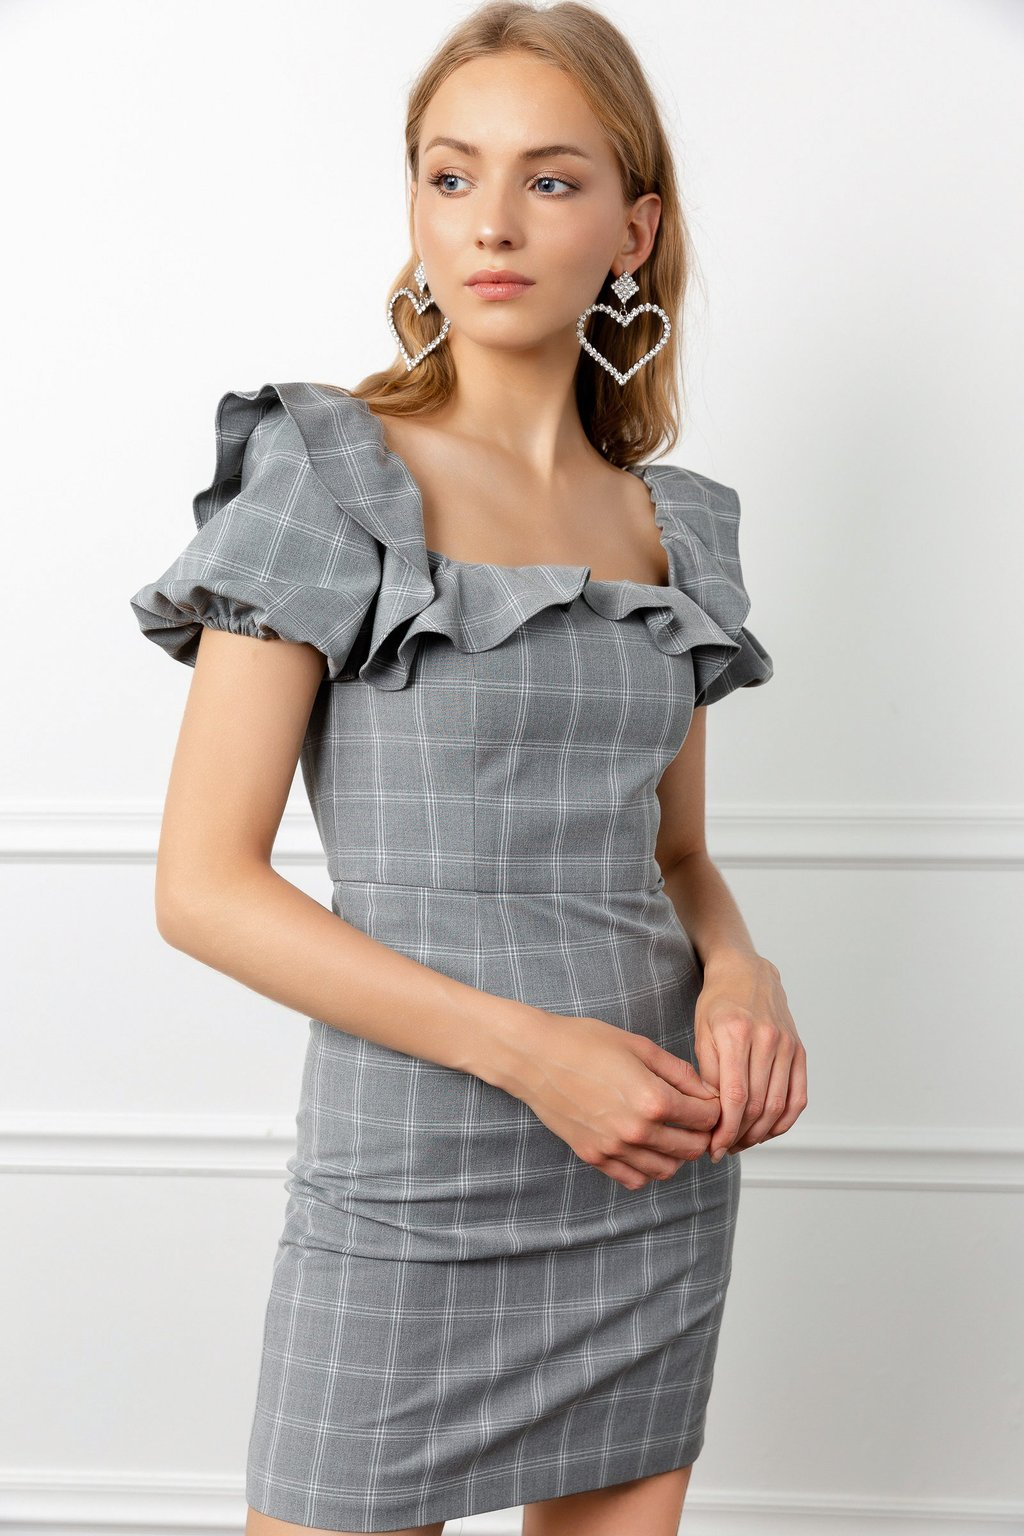 Petunia Plaid Dress and May Earrings by J.ING women's fashion and accessories